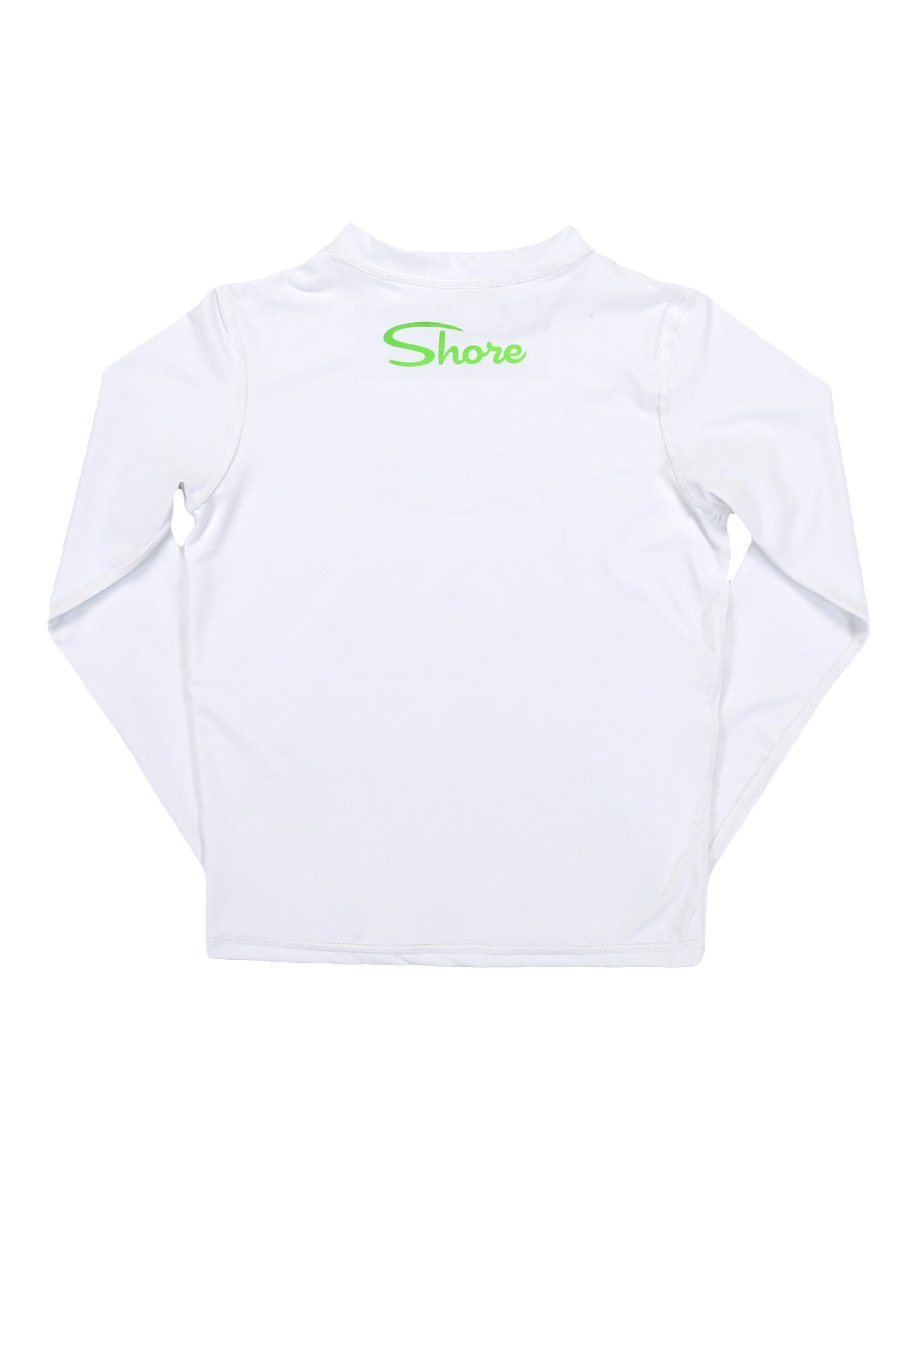 Kids Pineapple L/S Rashguard - White - Shore